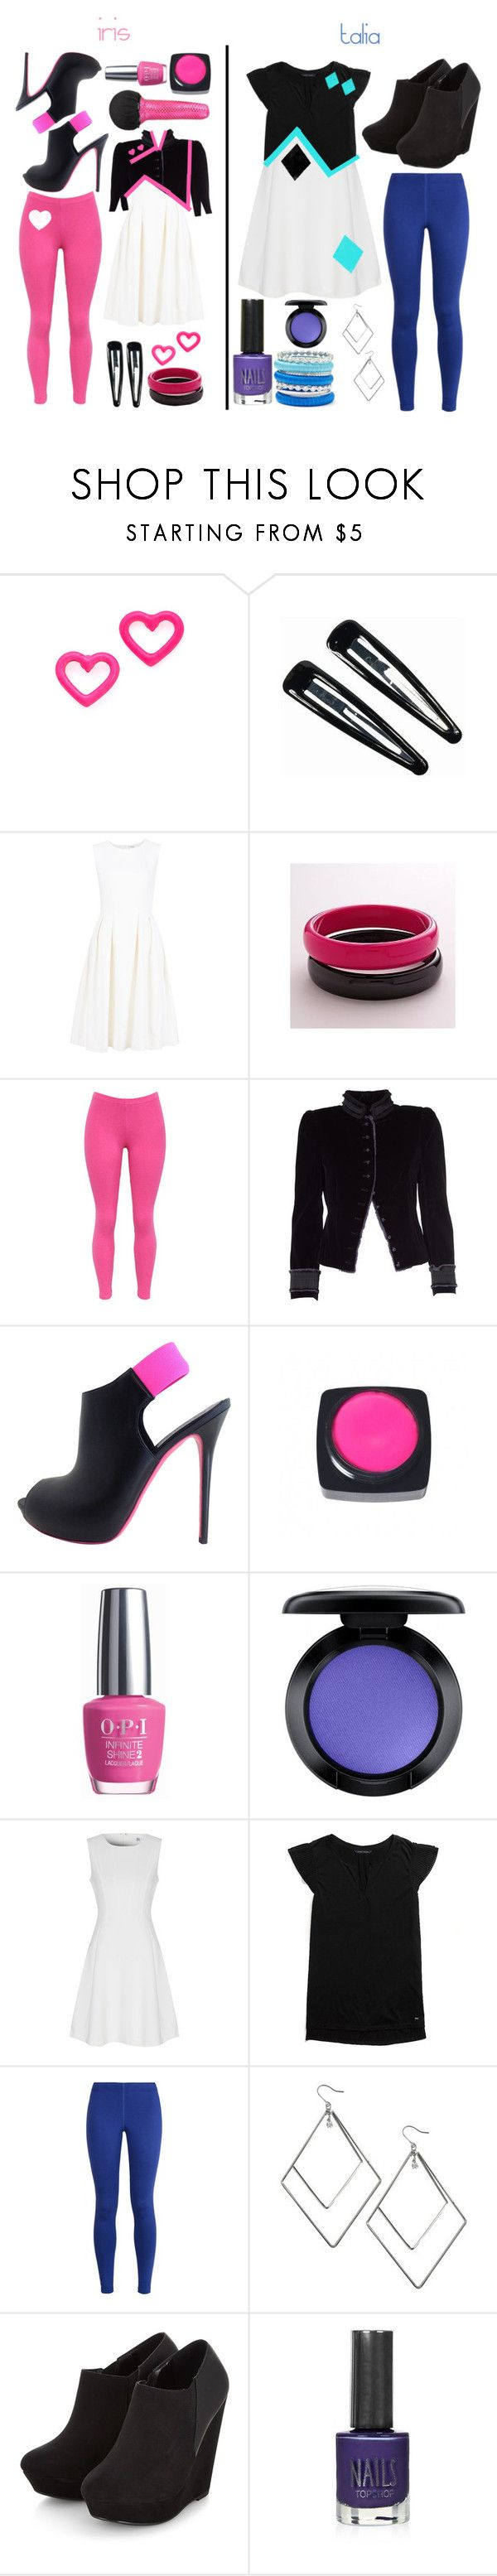 """""New Star Generation"" music video outfits (Talia and Iris)"" by lilithgemini ❤ liked on Polyvore featuring Marc by Marc Jacobs, Clips, ADAM, WithChic, Marc Jacobs, Alexander McQueen, OPI, MAC Cosmetics, True Decadence and Tommy Hilfiger"